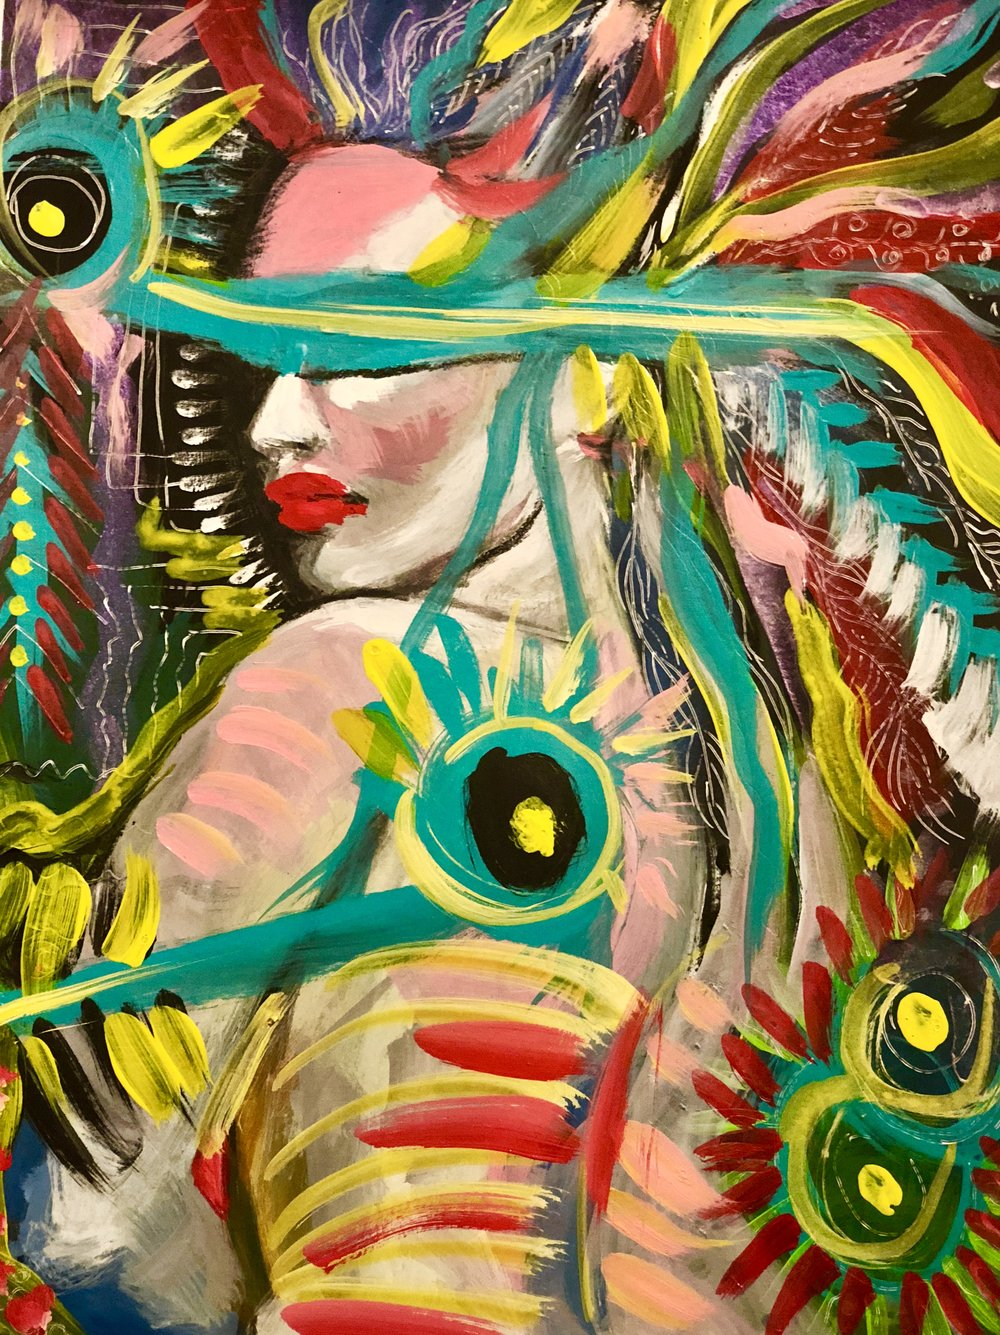 Peacock   Acrylic on paper  16 x 24   $225